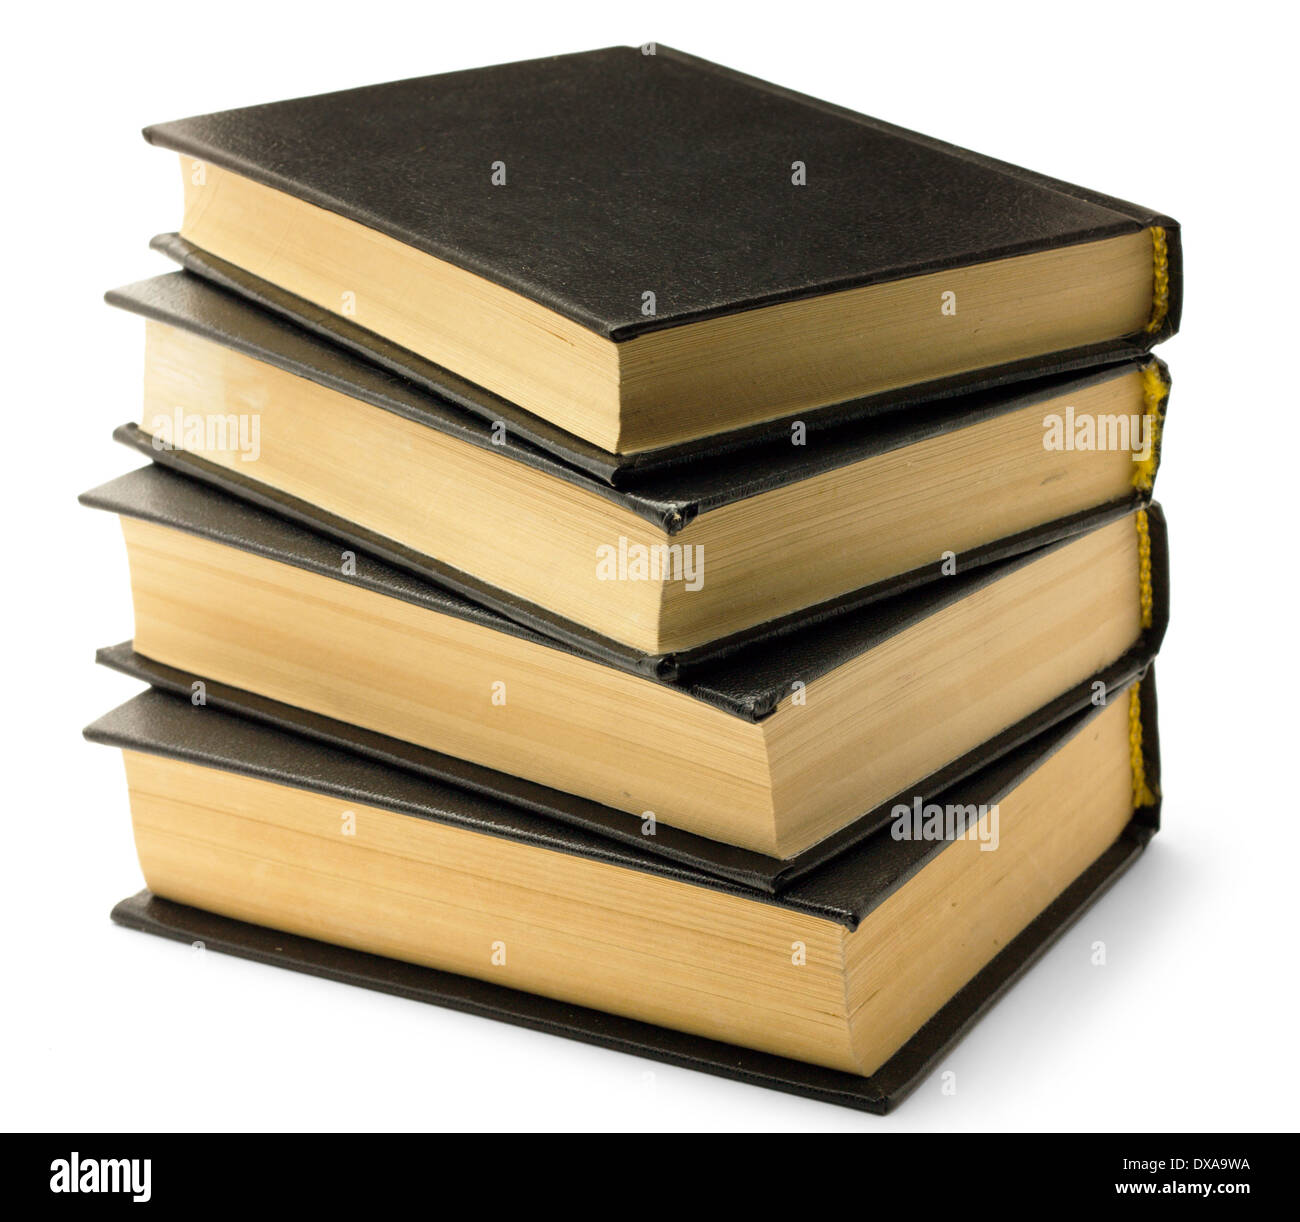 Stack of old black books isolated on white background - Stock Image